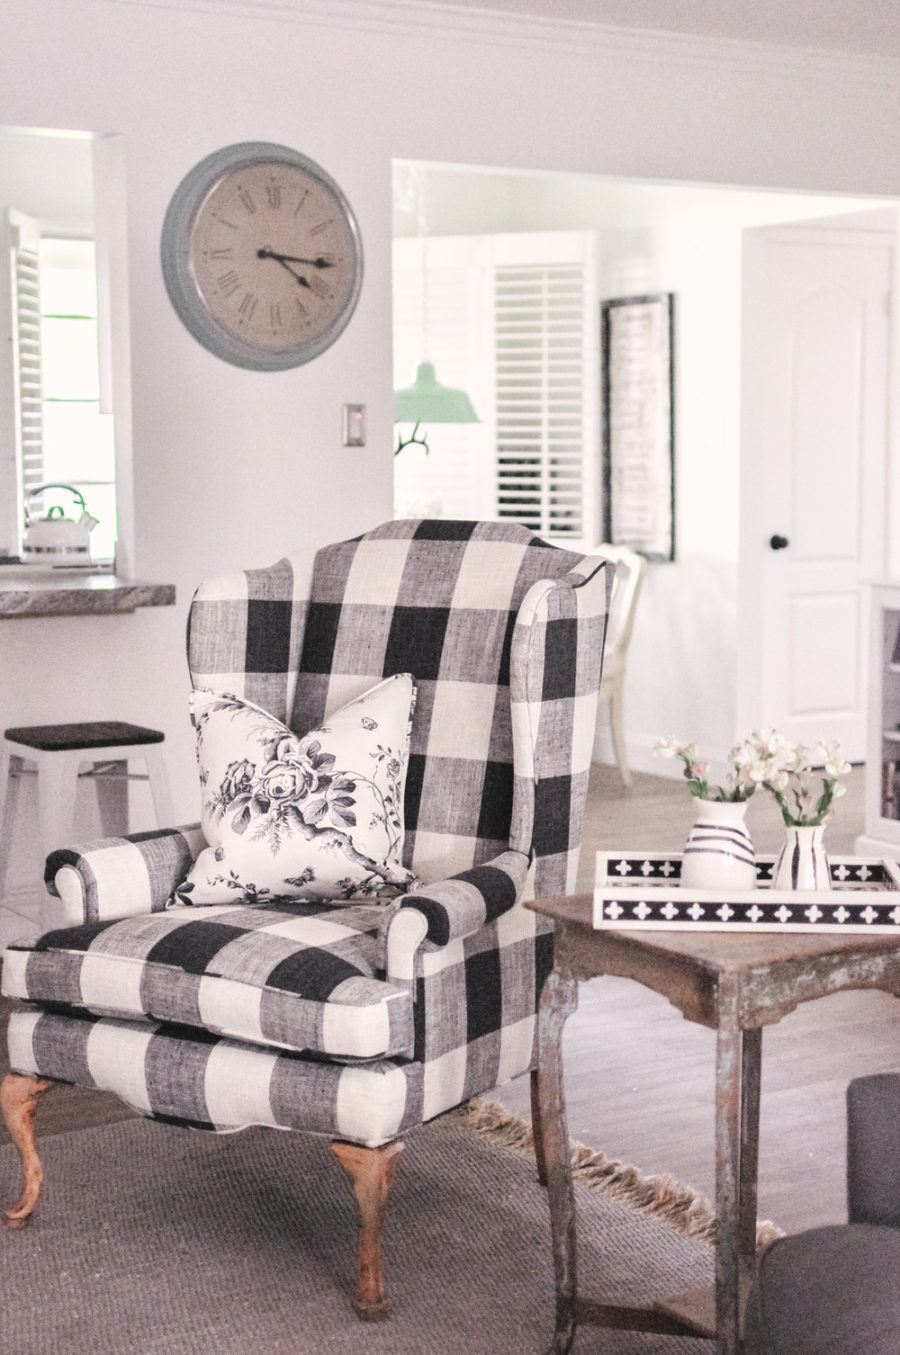 15 Ways To Style The House With Trendy Buffalo Check